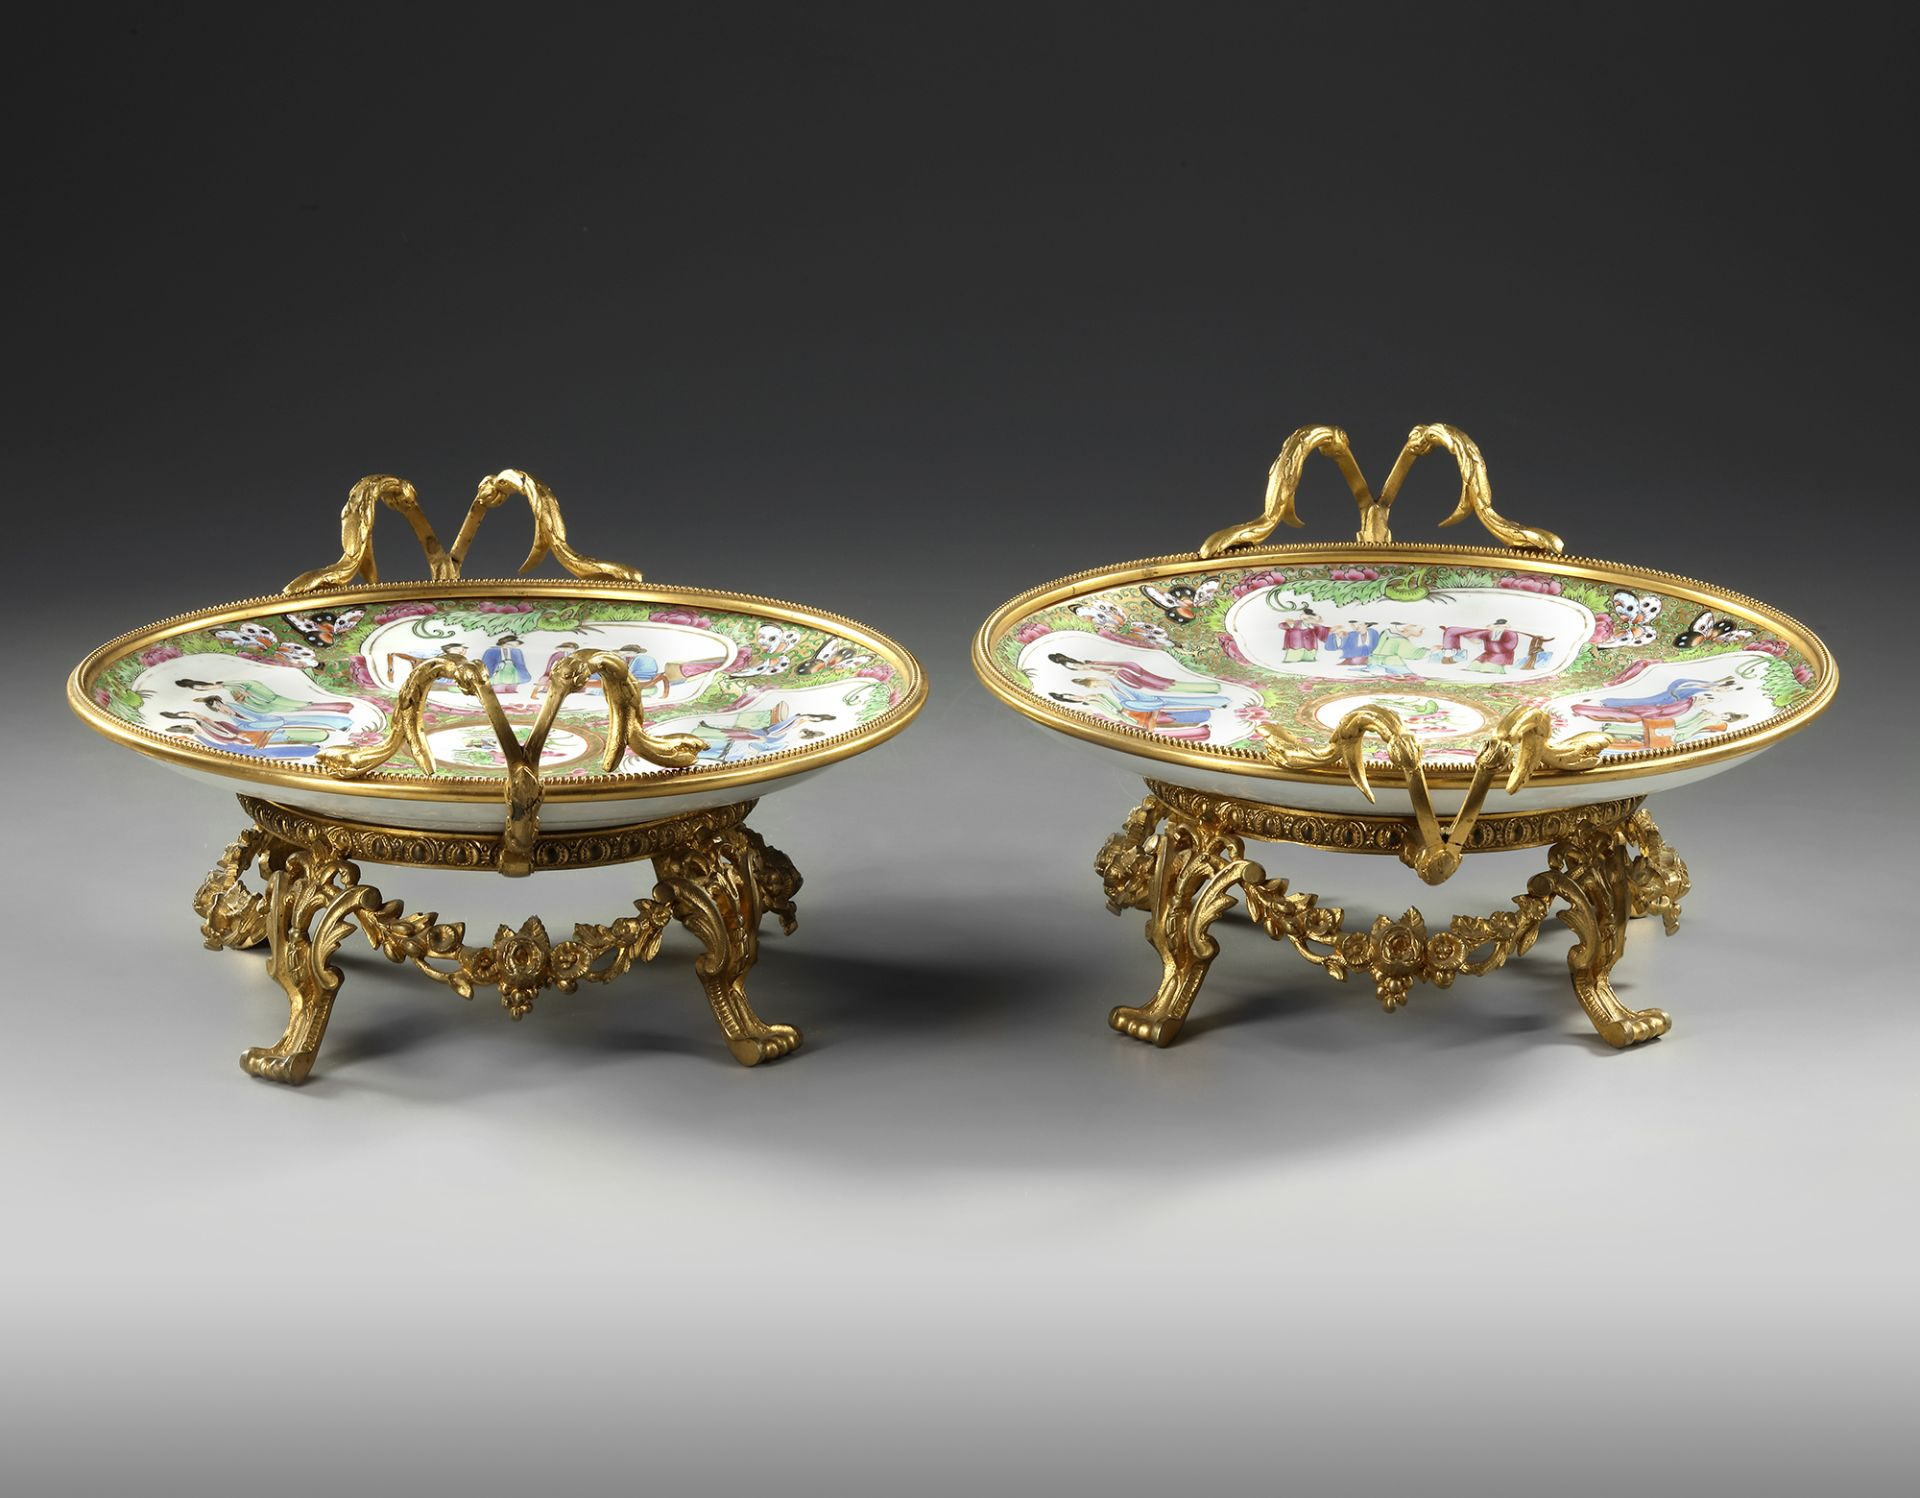 A PAIR OF CANTONESE PLATES, 20TH CENTURY - Image 3 of 4